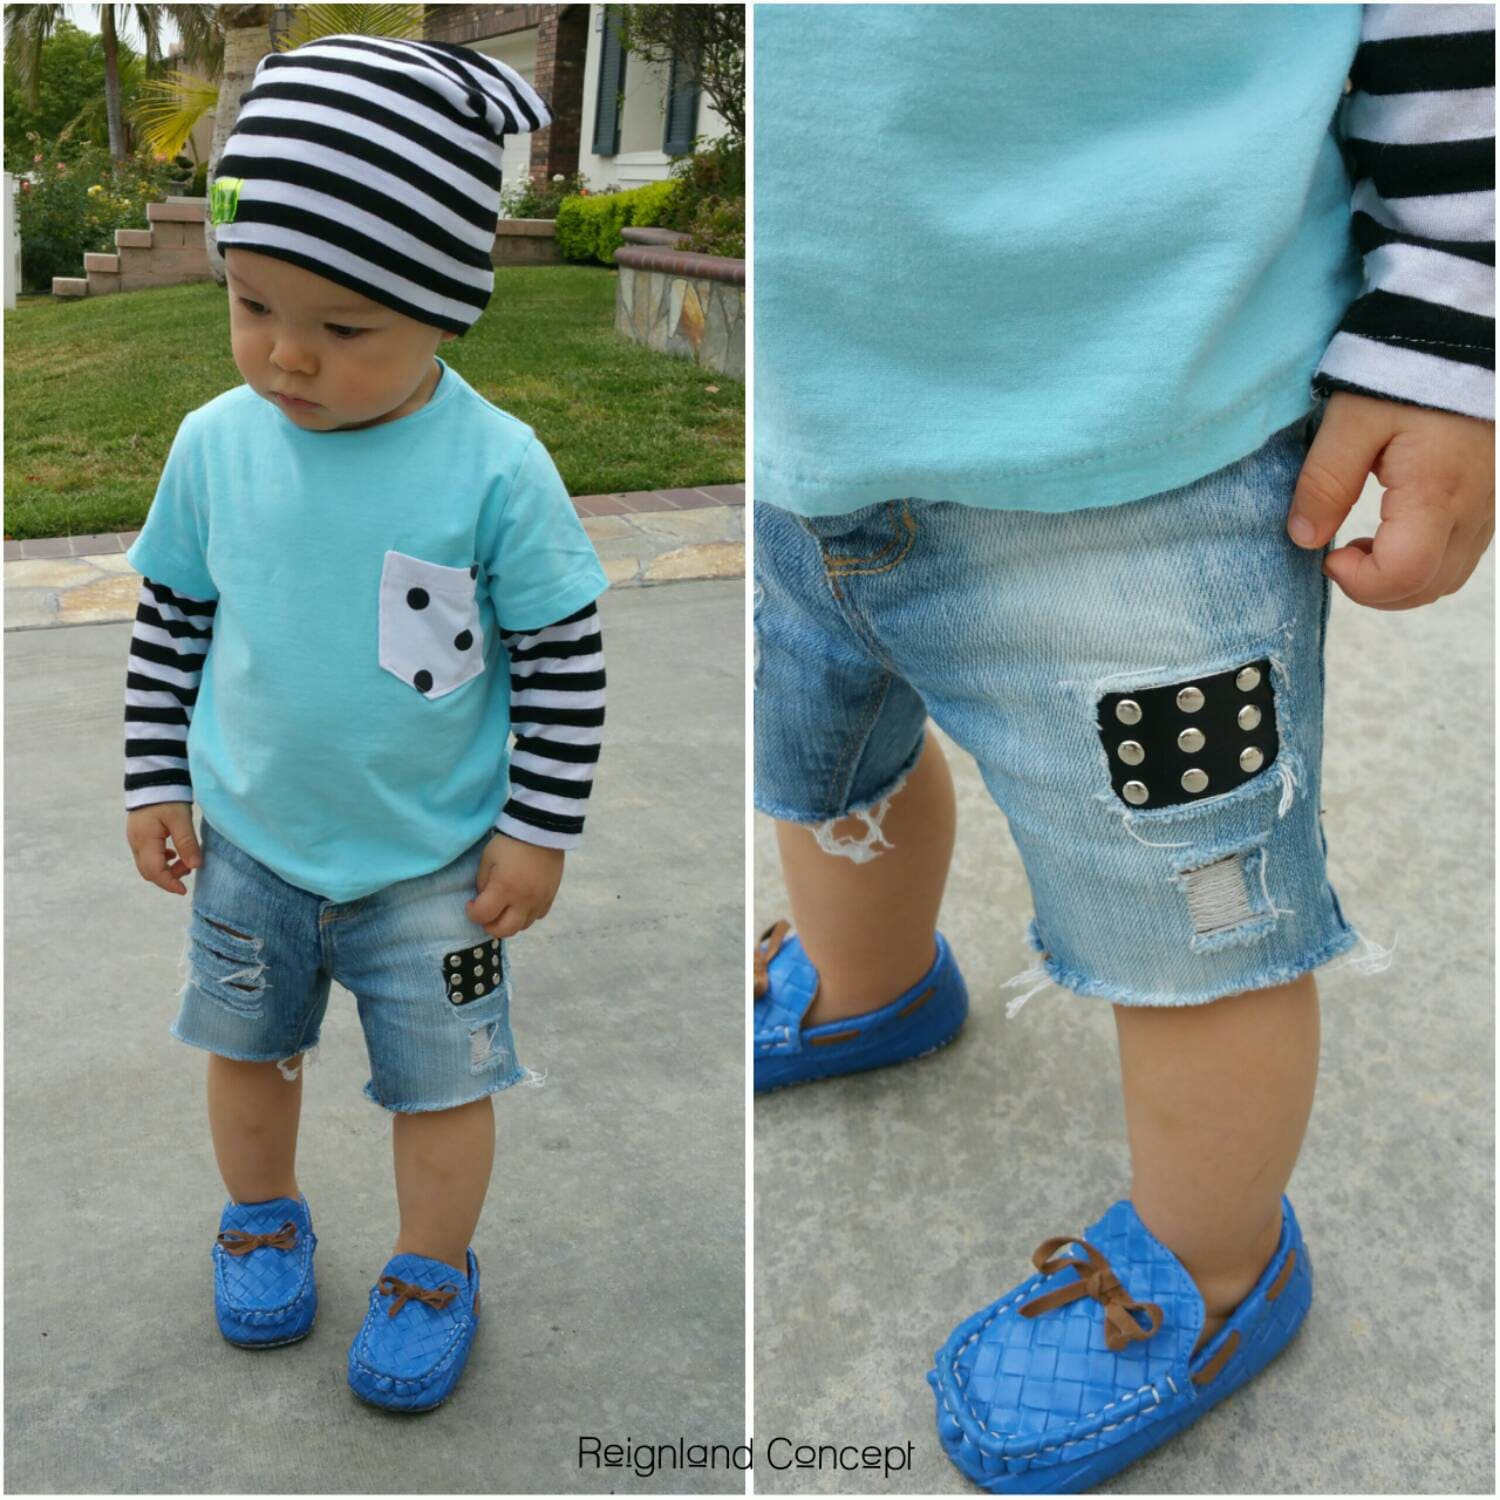 Baby Jeans Boys Jeans Jeans for Boys Kids Jeans Baby